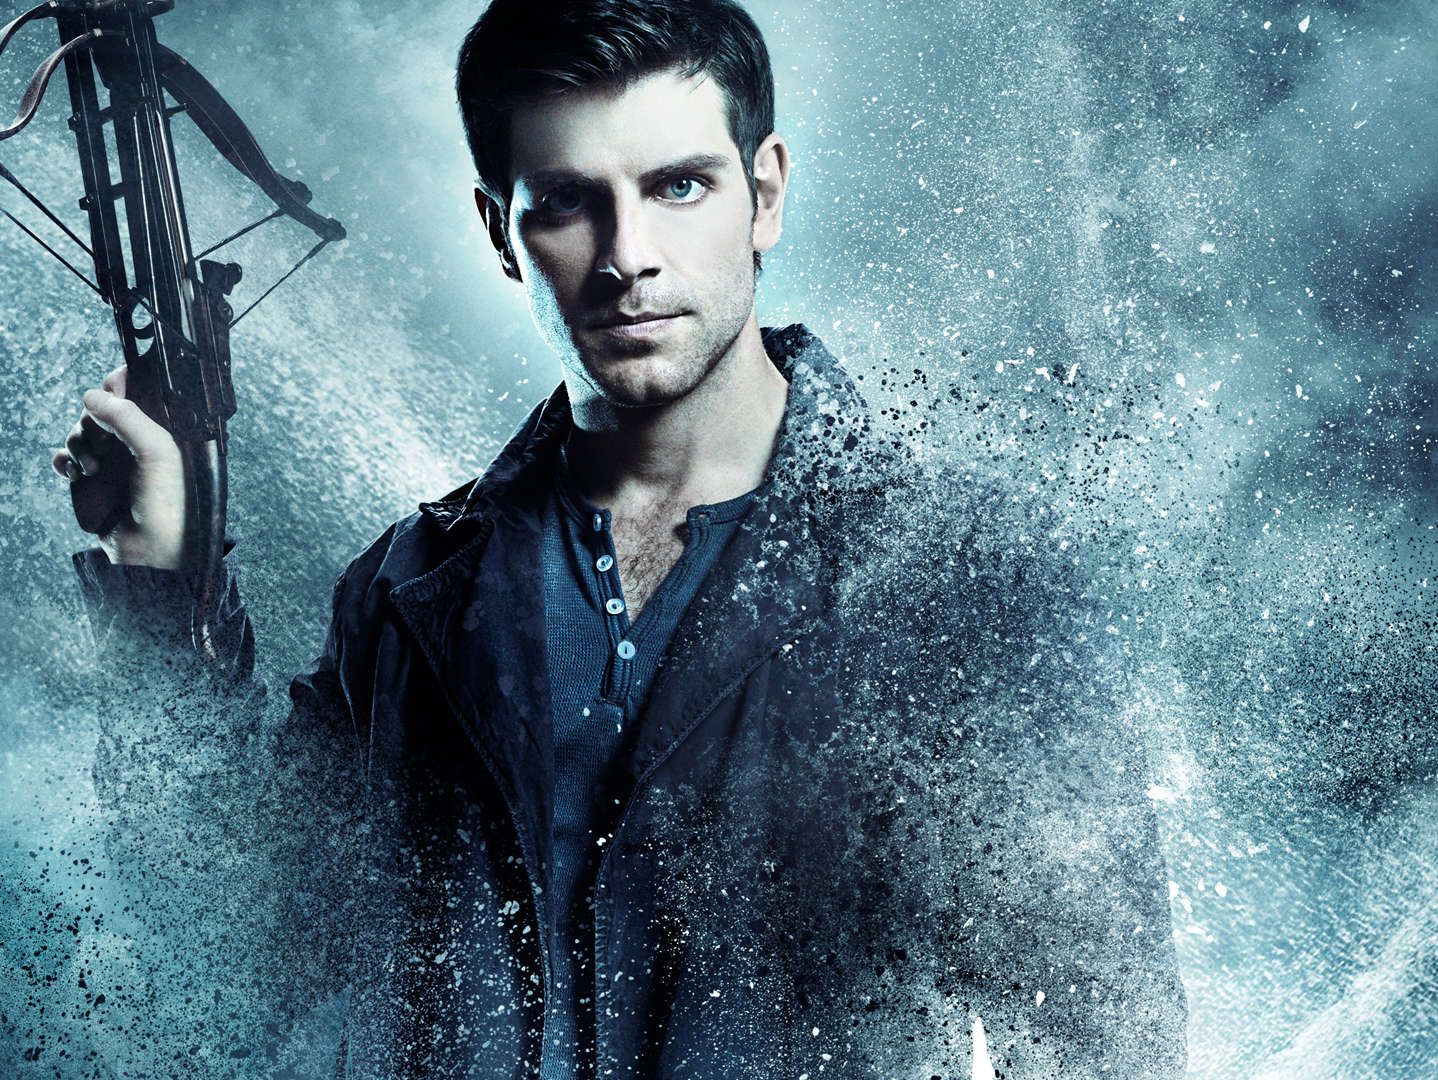 to watch NBC's Grimm